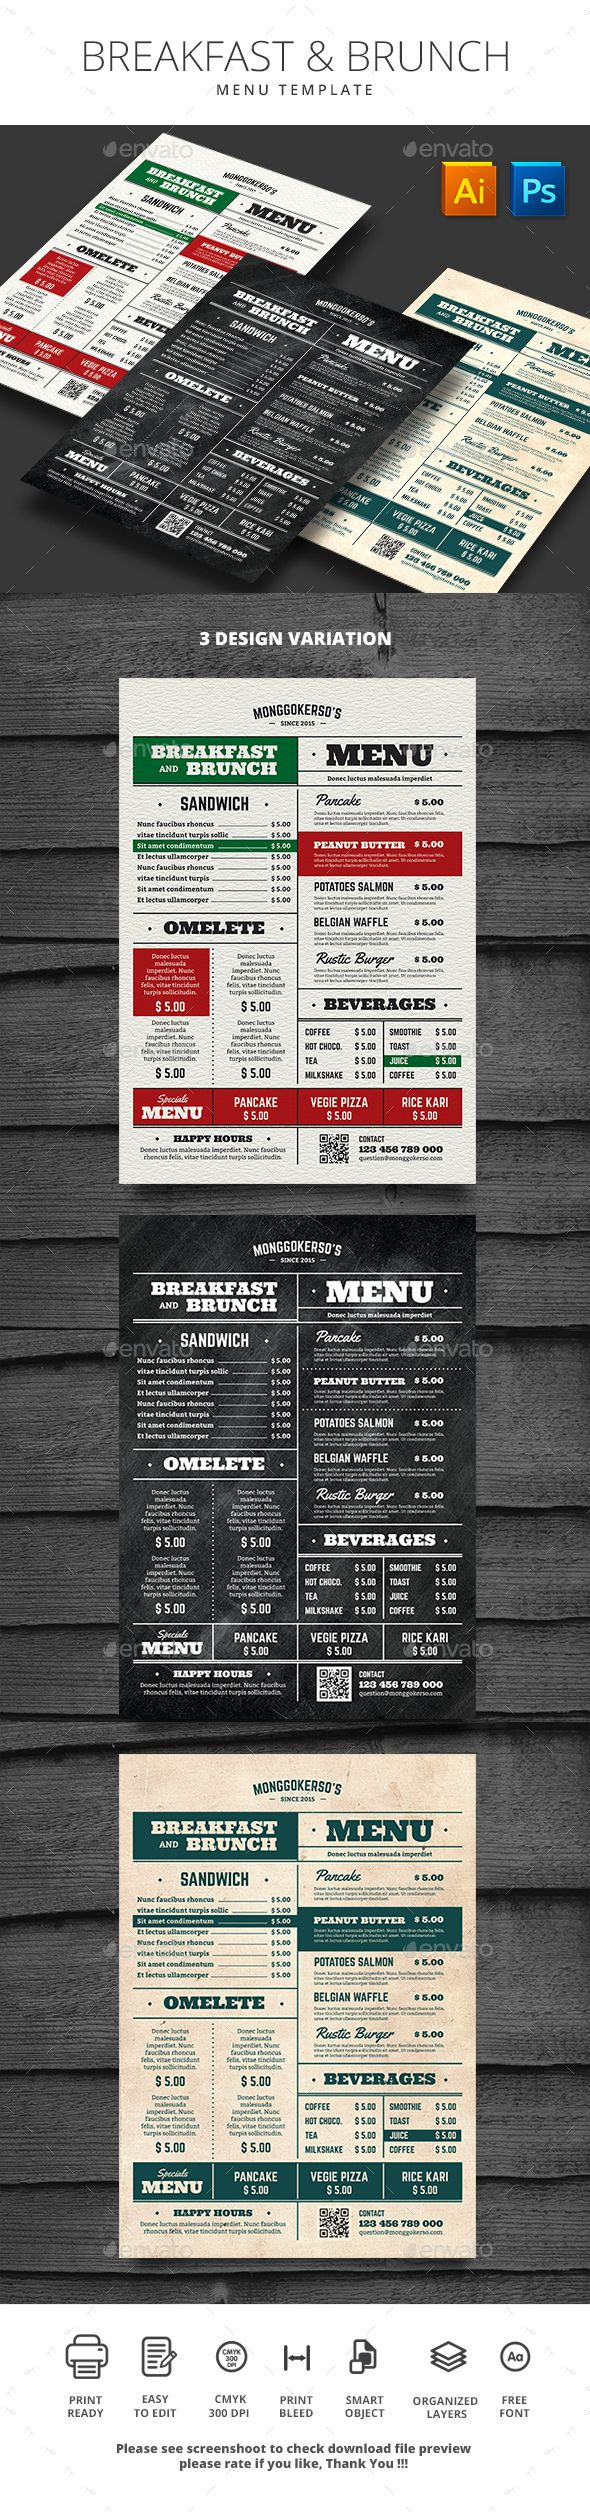 Breakfast and Brunch Menu Template PSD, AI Illustrator. Download here: https://graphicriver.net/item/breakfast-and-brunch-menu/17548127?ref=ksioks